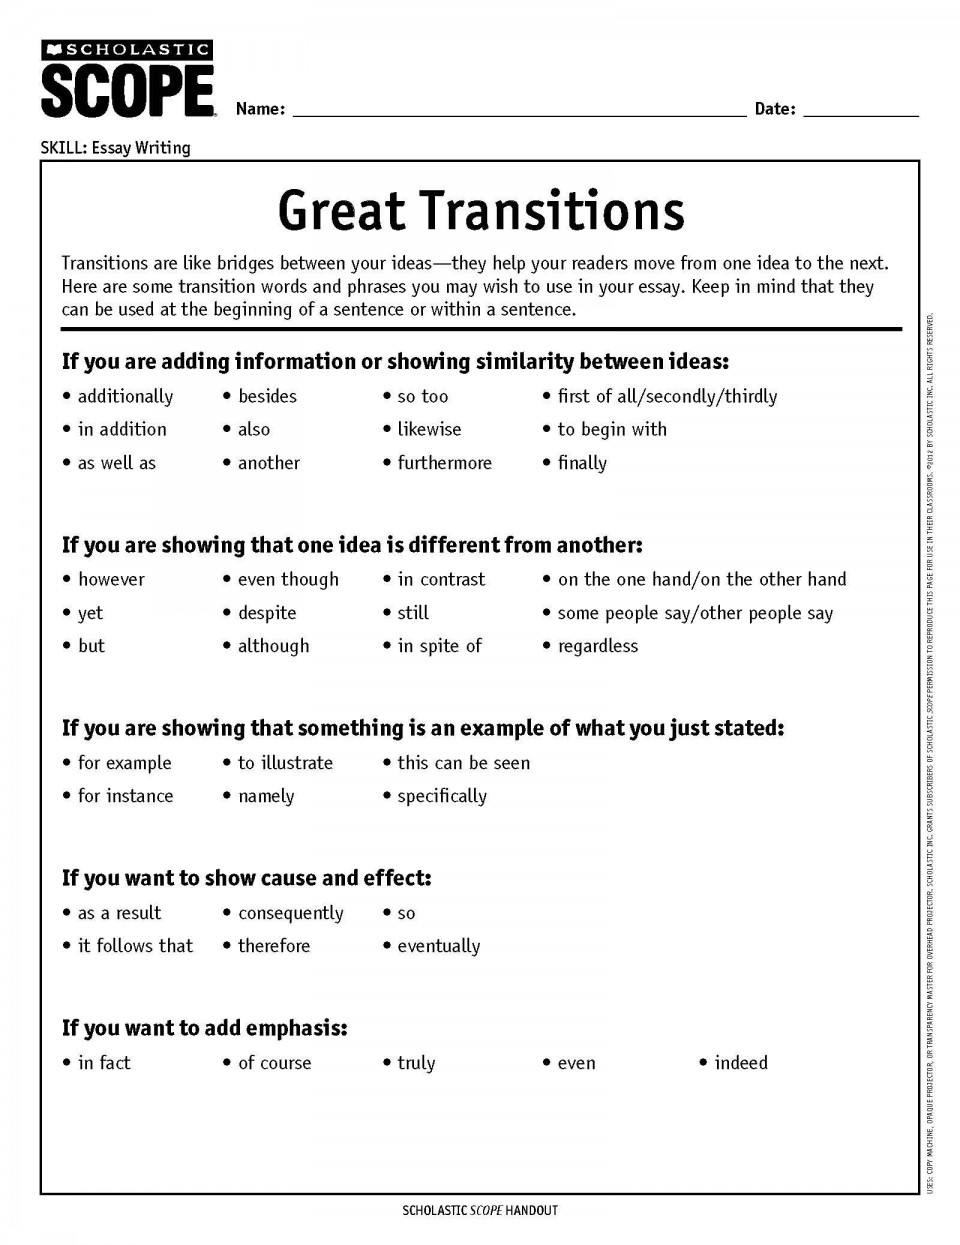 019 Essay Example Transitions How To Choose The Perfect Transition Word Or Phrase Writing Words For An List Of Transitional Essays Pdf Archaicawful Introduction Persuasive 960